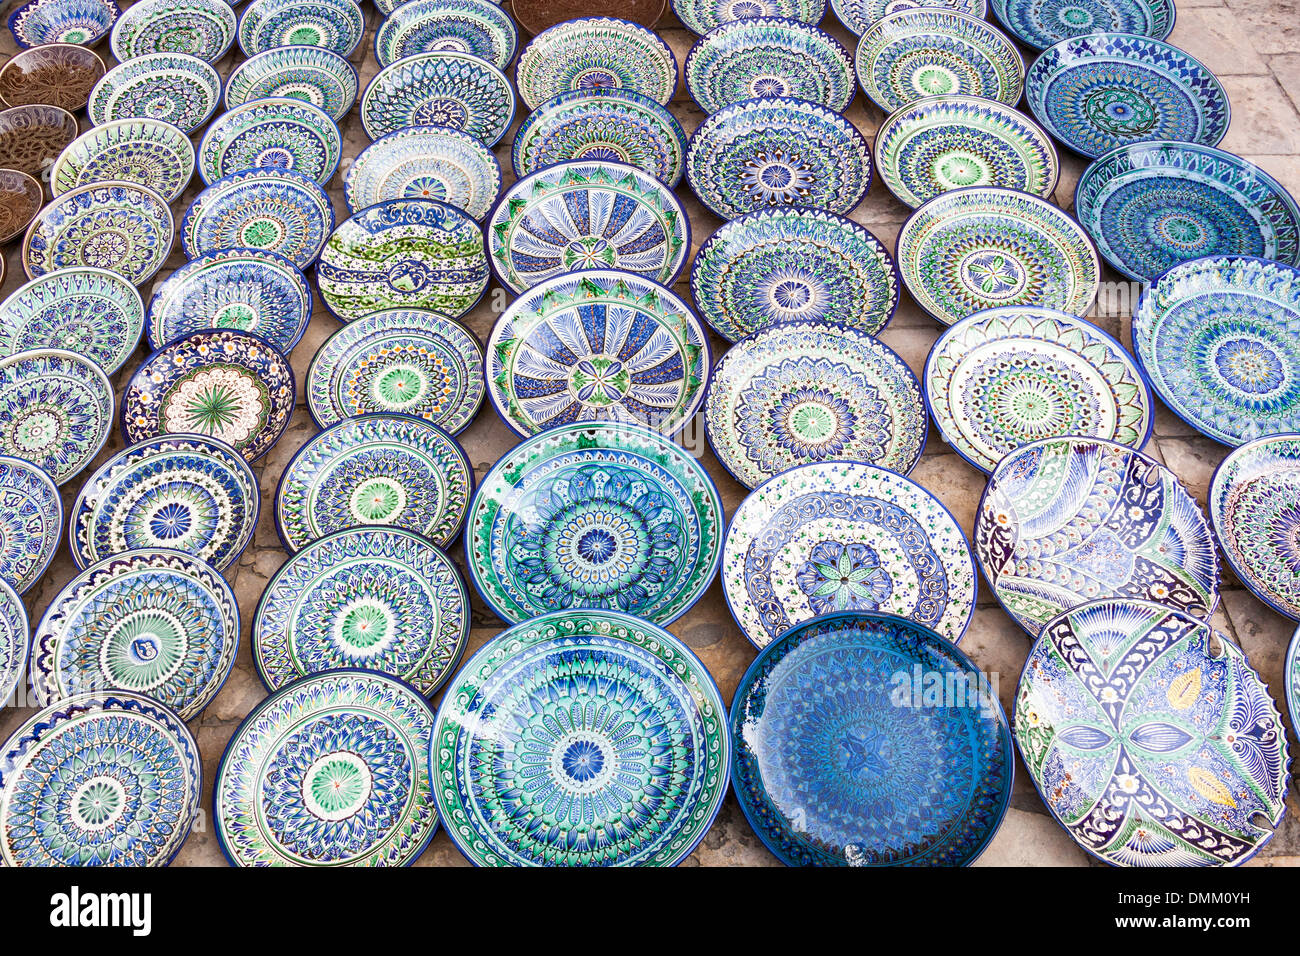 Ceramic plates and bowls for sale Bukhara Uzbekistan & Ceramic plates and bowls for sale Bukhara Uzbekistan Stock Photo ...